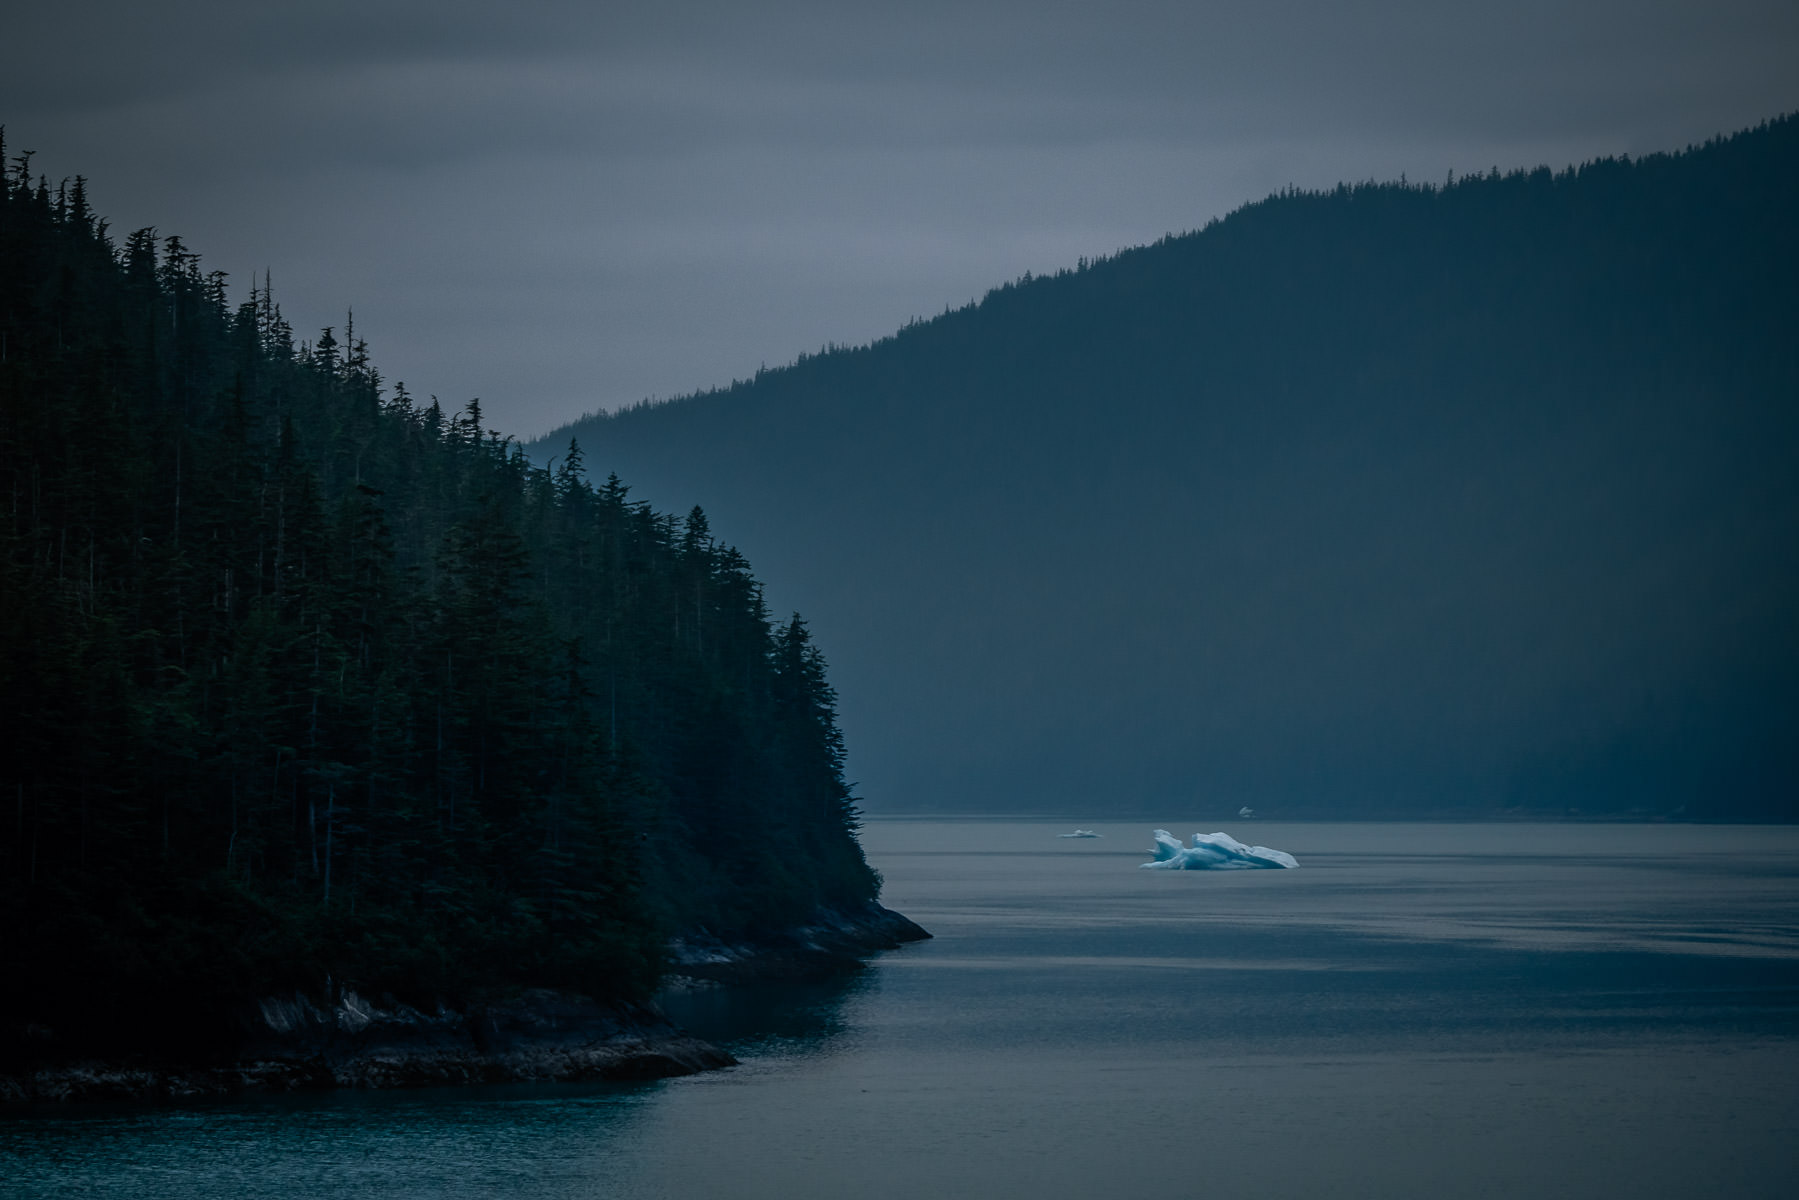 An iceberg floats in Alaska's Stephens Passage near Juneau in the morning twilight.